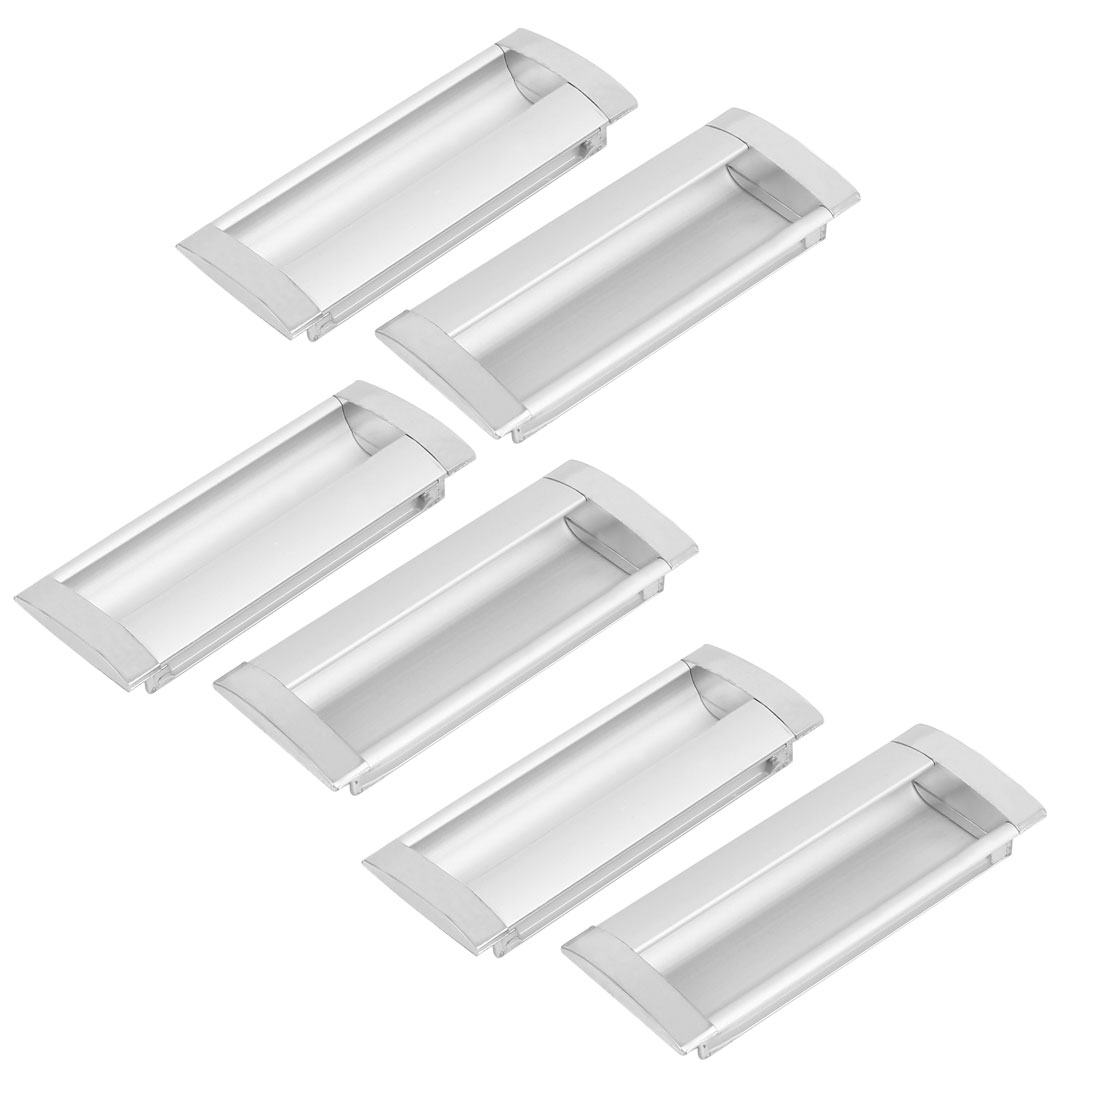 Cabinet Drawer Alloy Rectangle Flush Pull Handles Grips Silver Tone 6pcs